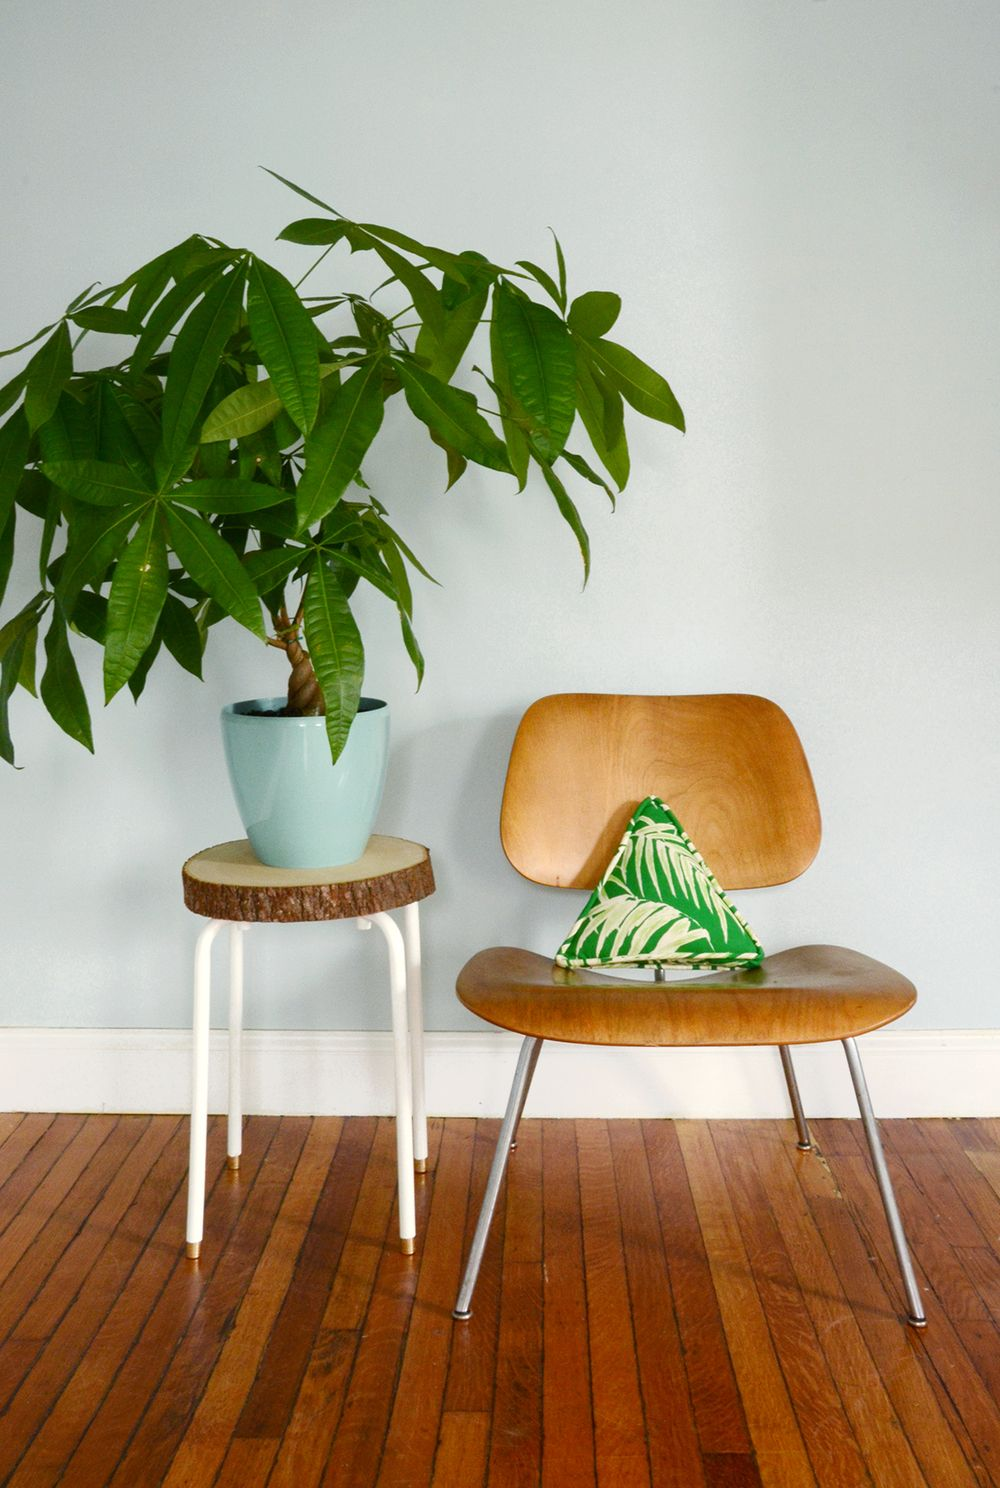 Find Out How To Turn An Ikea Marius Stool Into A Lovely Plant Stand With A Diy Furniture Projects Diy Wood Projects Furniture Reclaimed Wood Projects Furniture